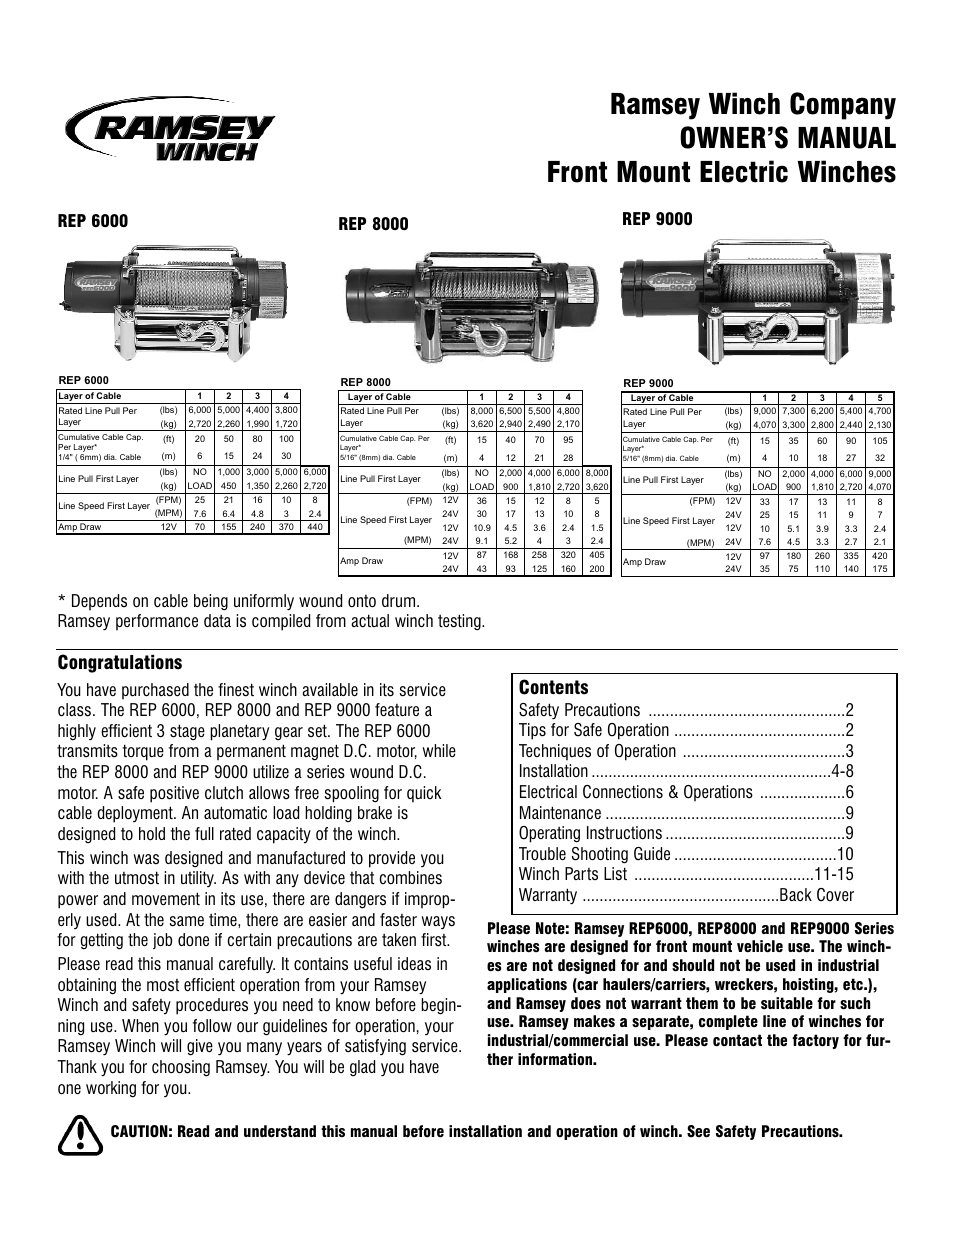 Reese Towpower Portable Electric Winch Wiring Diagram 53 Badlands 100 Chicago Parts Ramsey Rep 6000 8000 9000 Current Page1resize